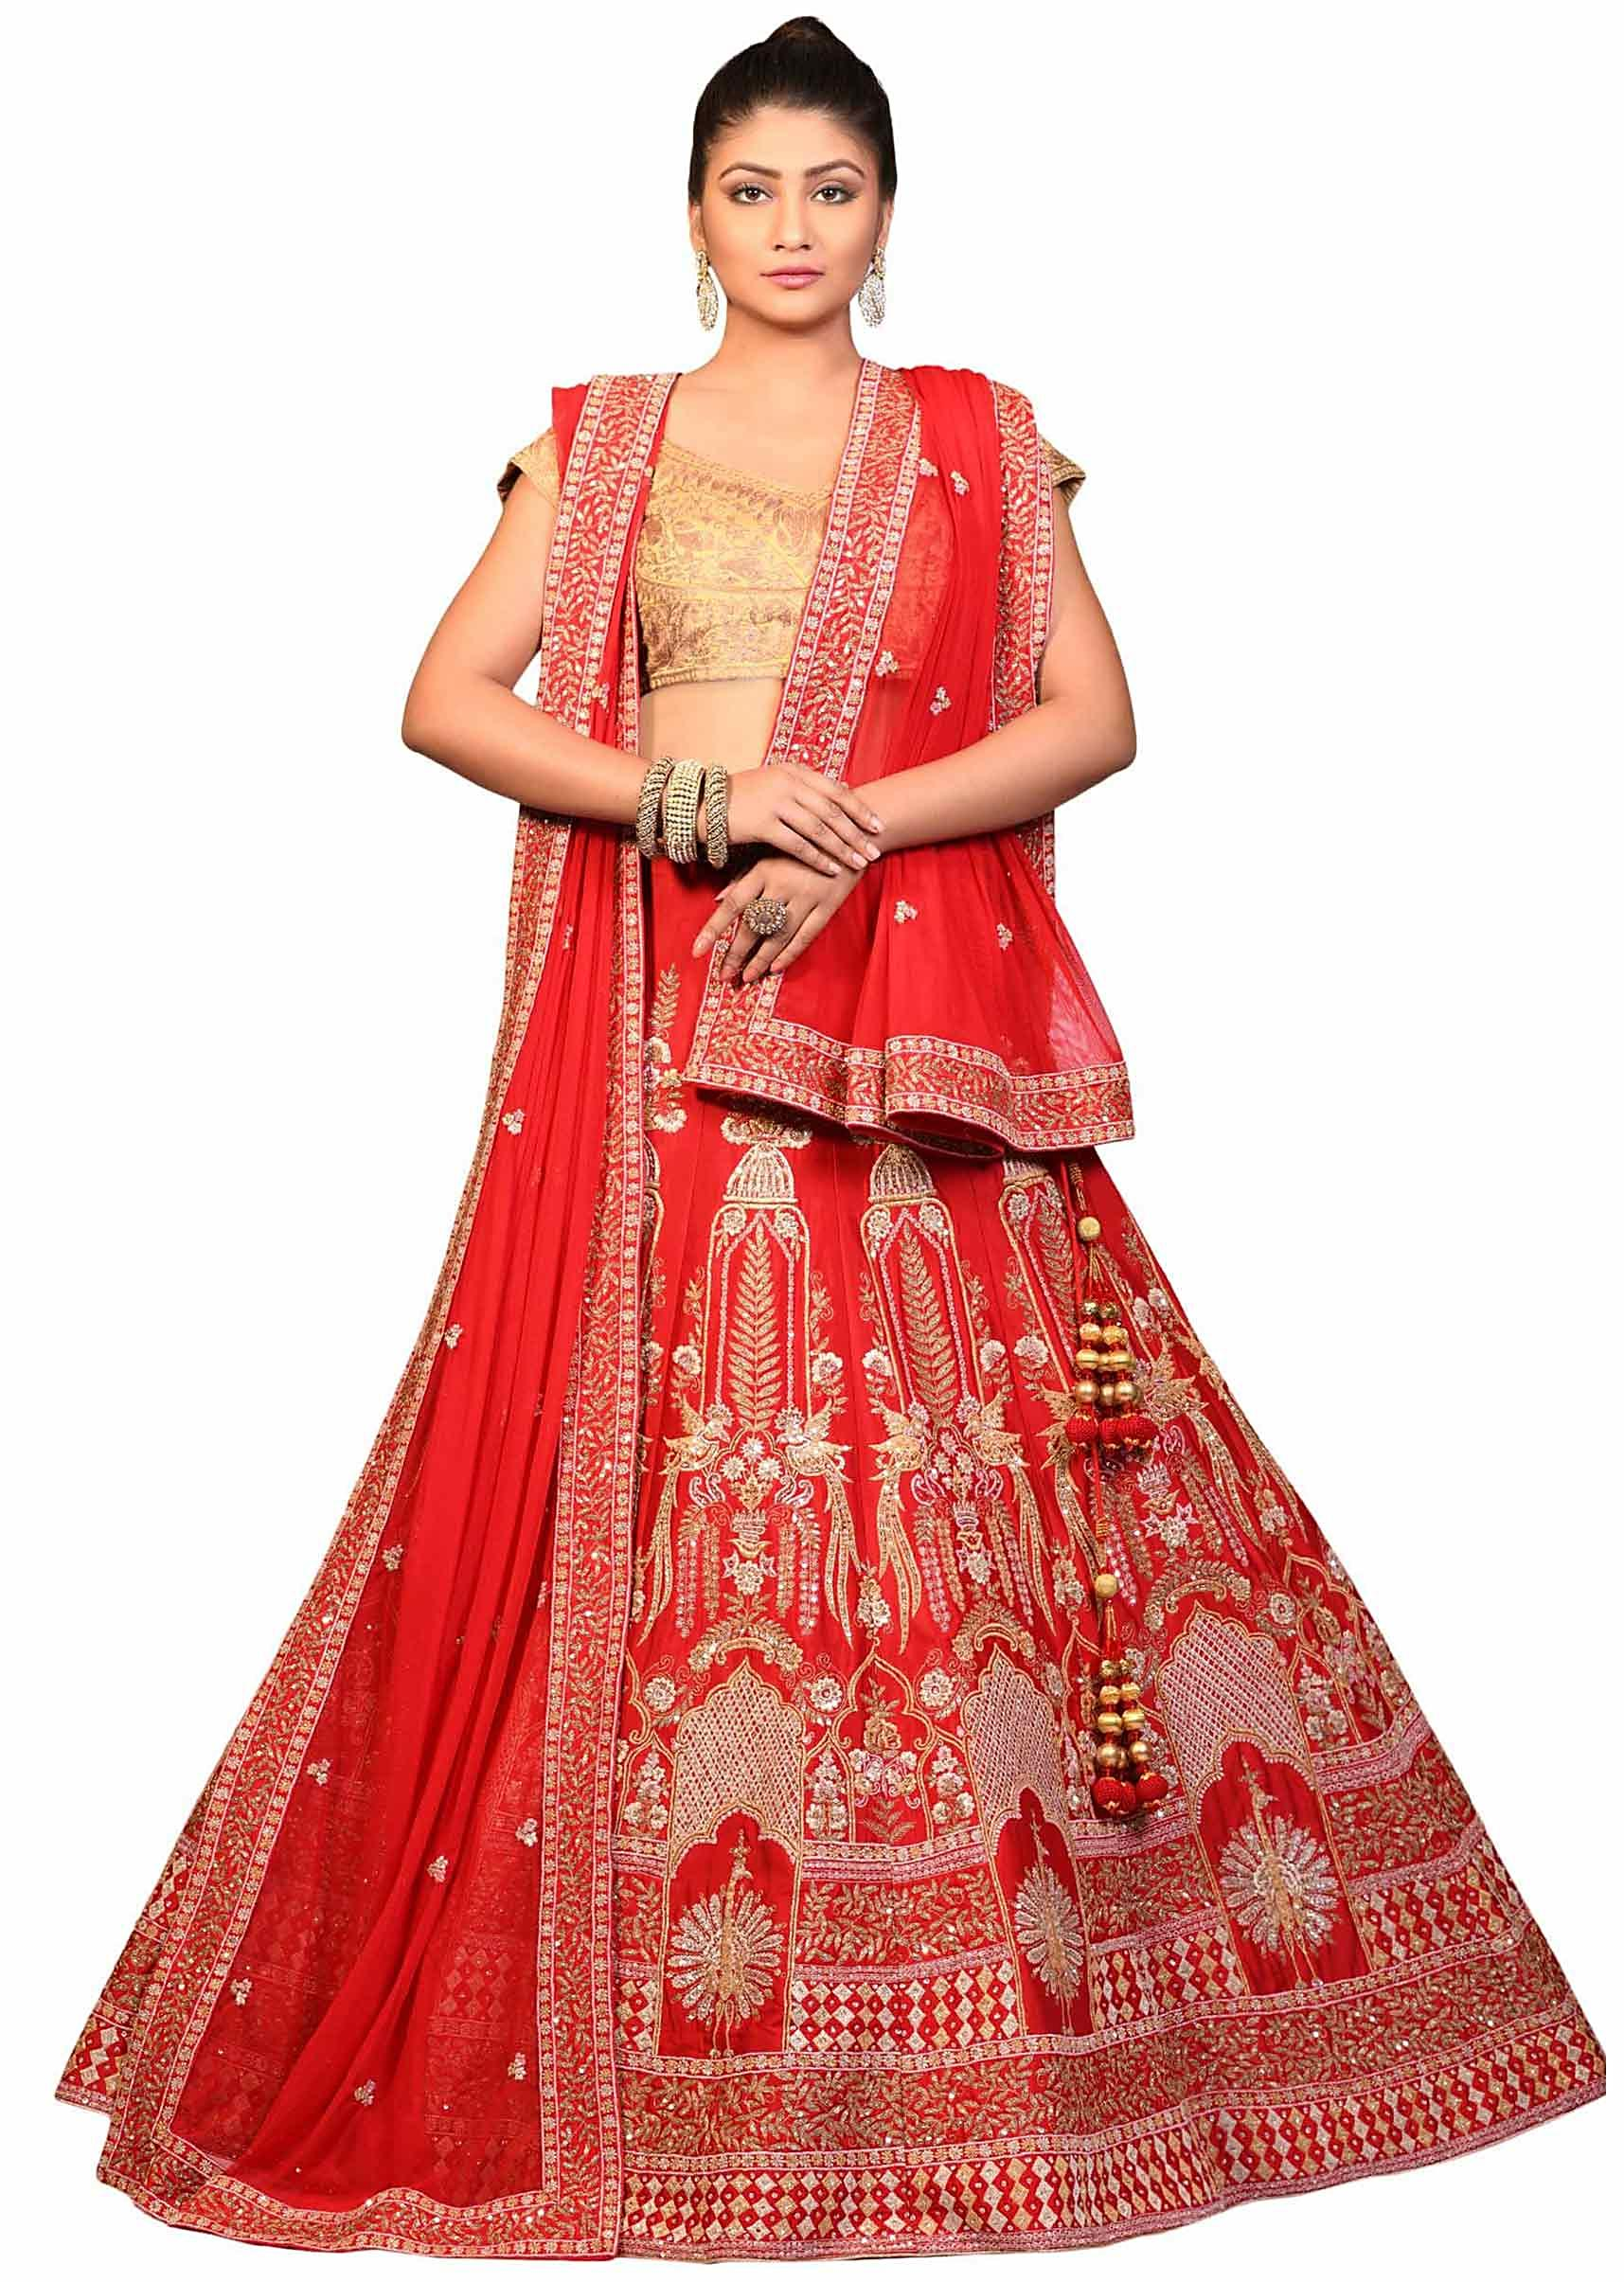 e3c8ce5c46 Red lehenga in chanderi silk with zari embroidery in silver and gold